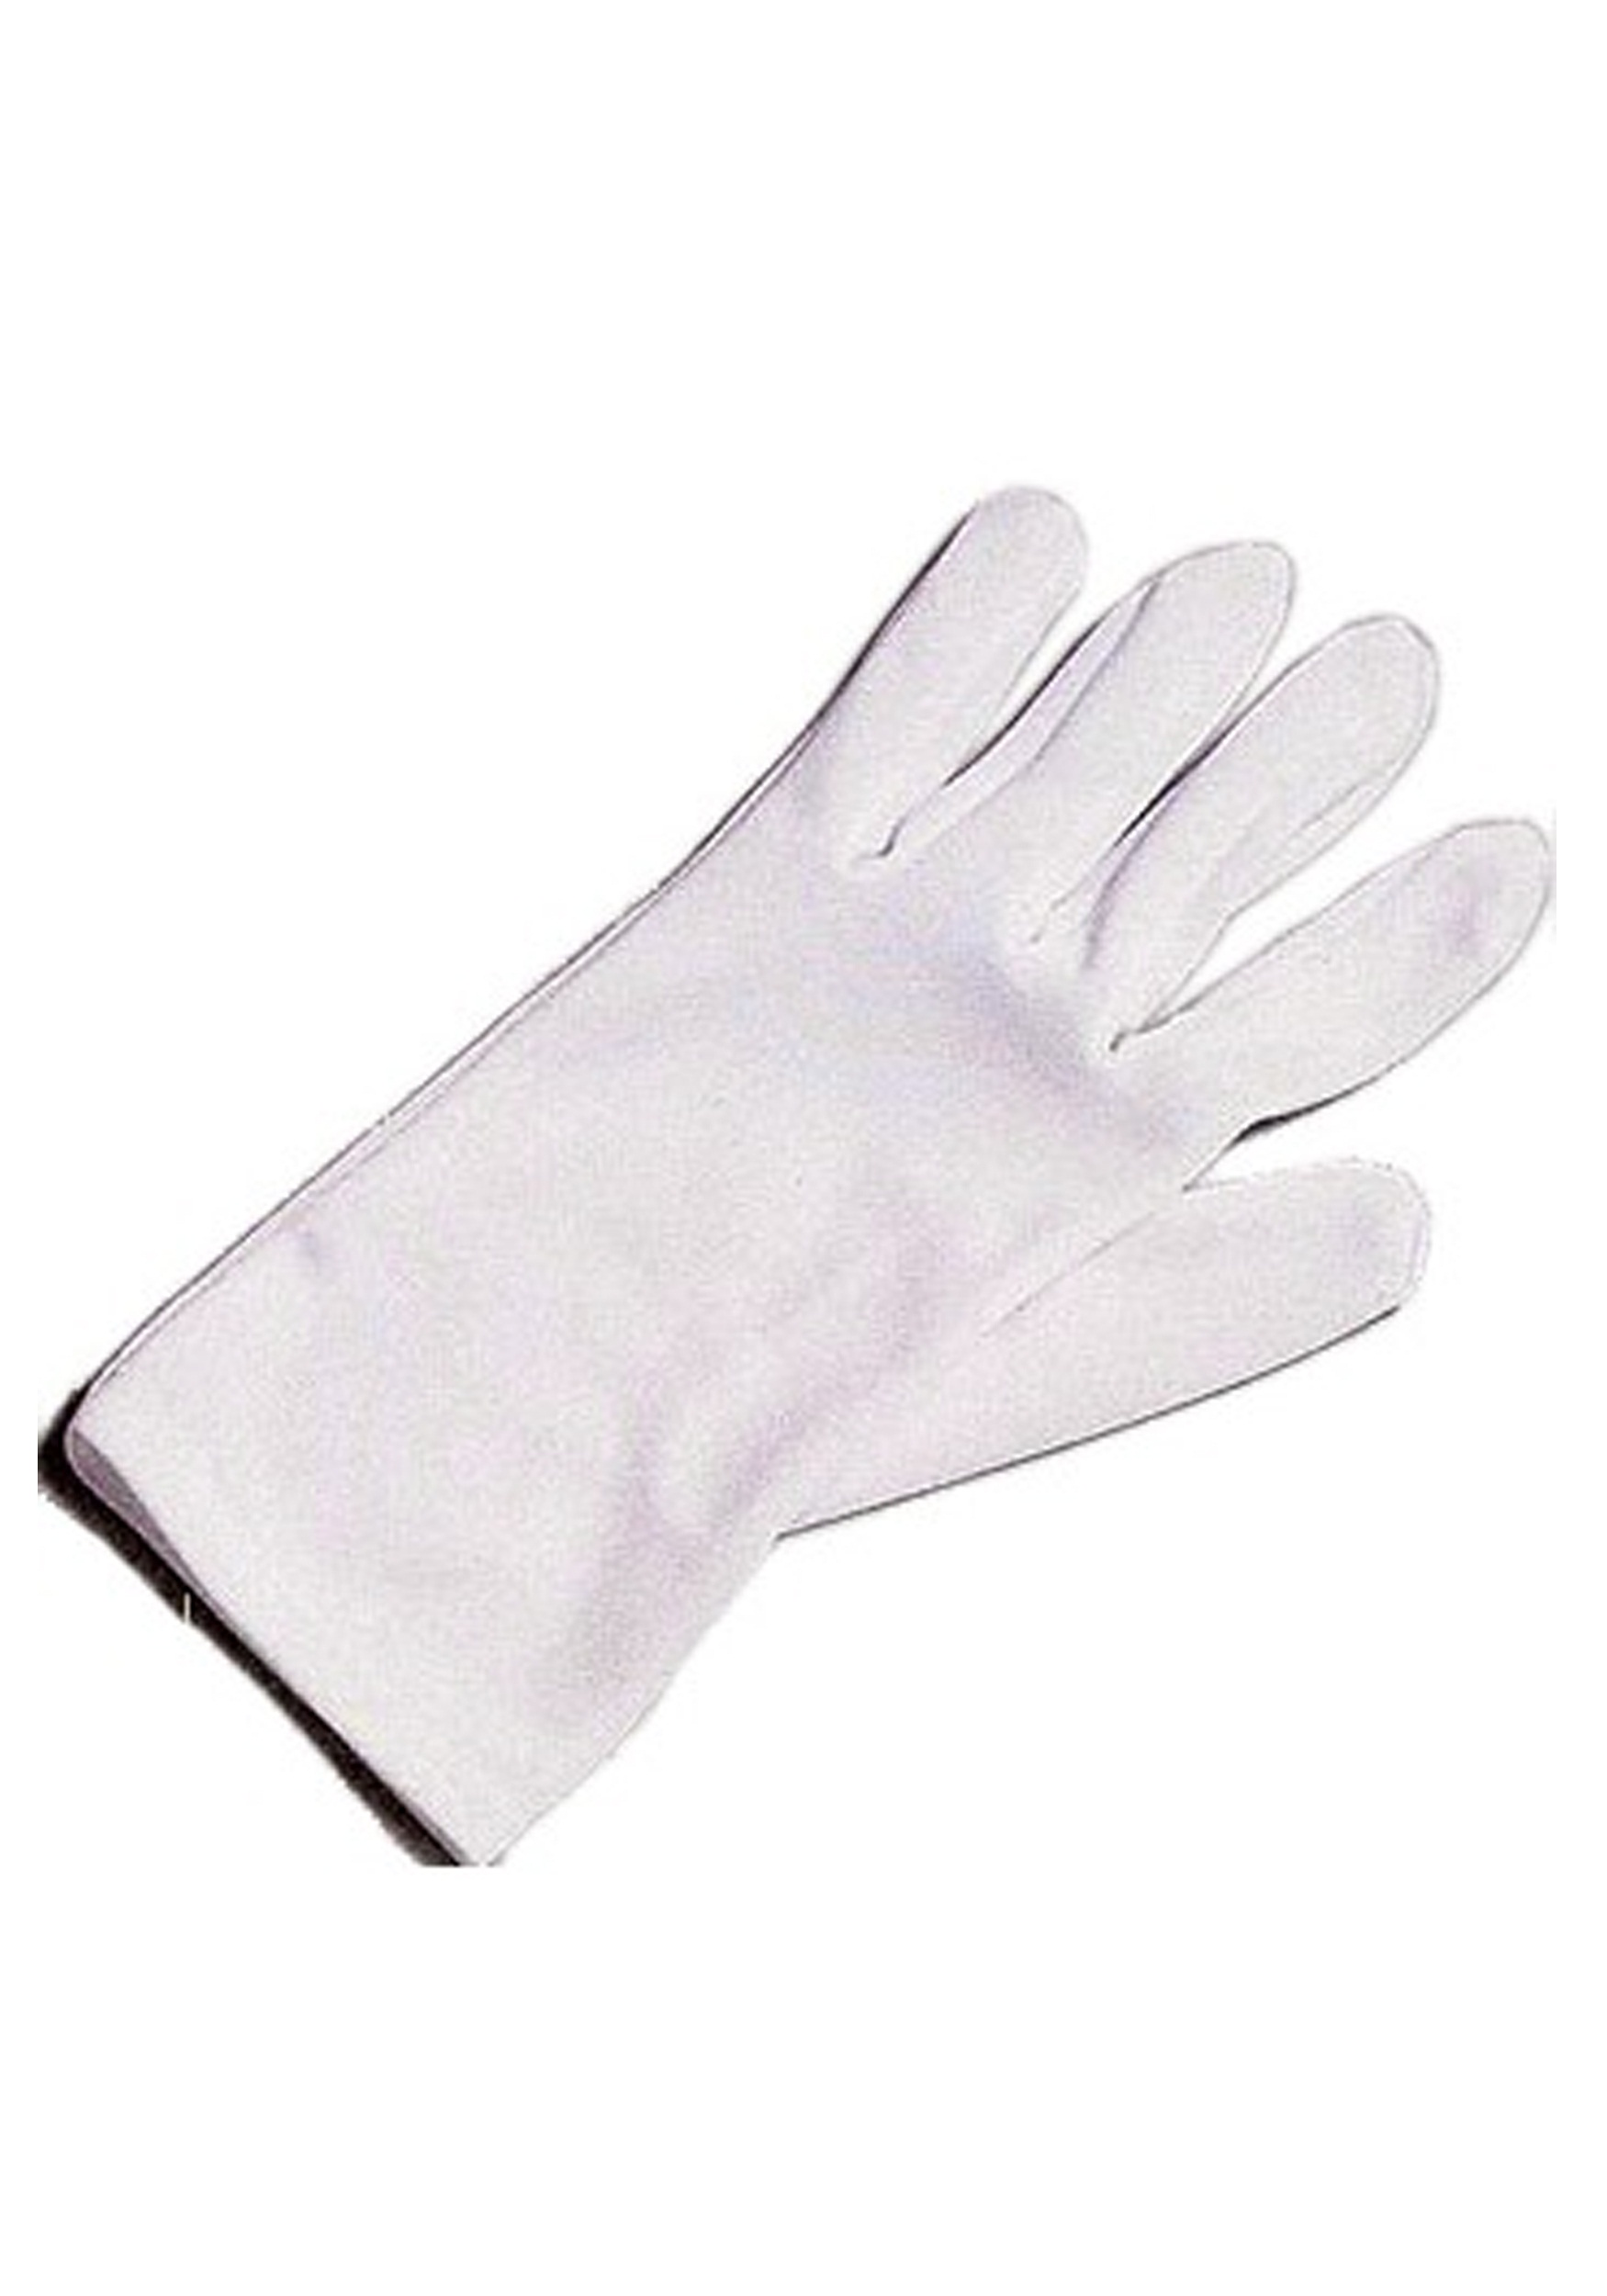 White Unisex Superhero Gloves